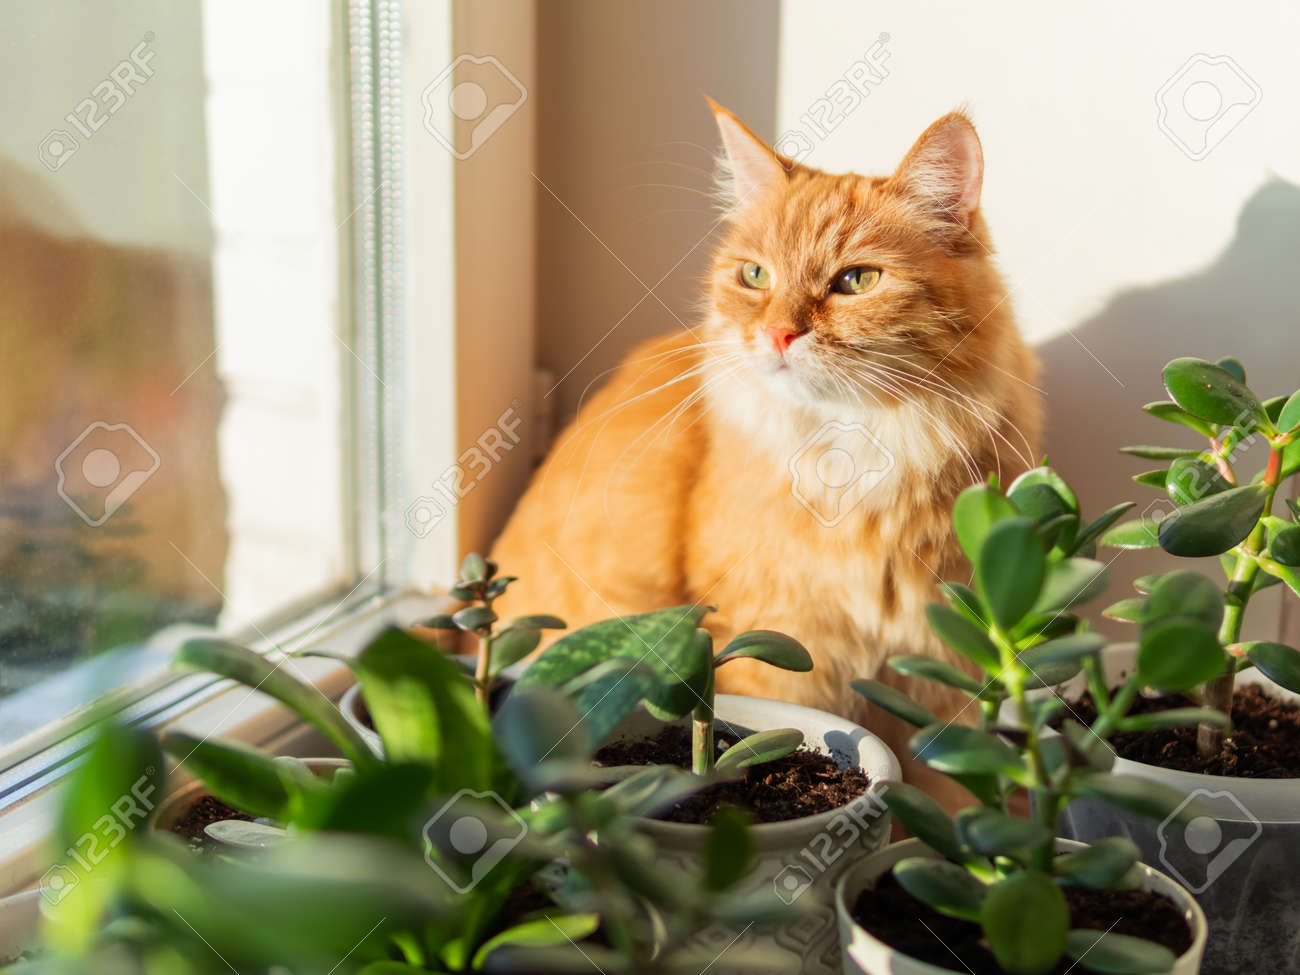 Cute ginger cat sits on window sill among flower pots with houseplants. Fluffy domestic animal near succulent Crassula plants. Cozy home lit with sunlight. - 172806588